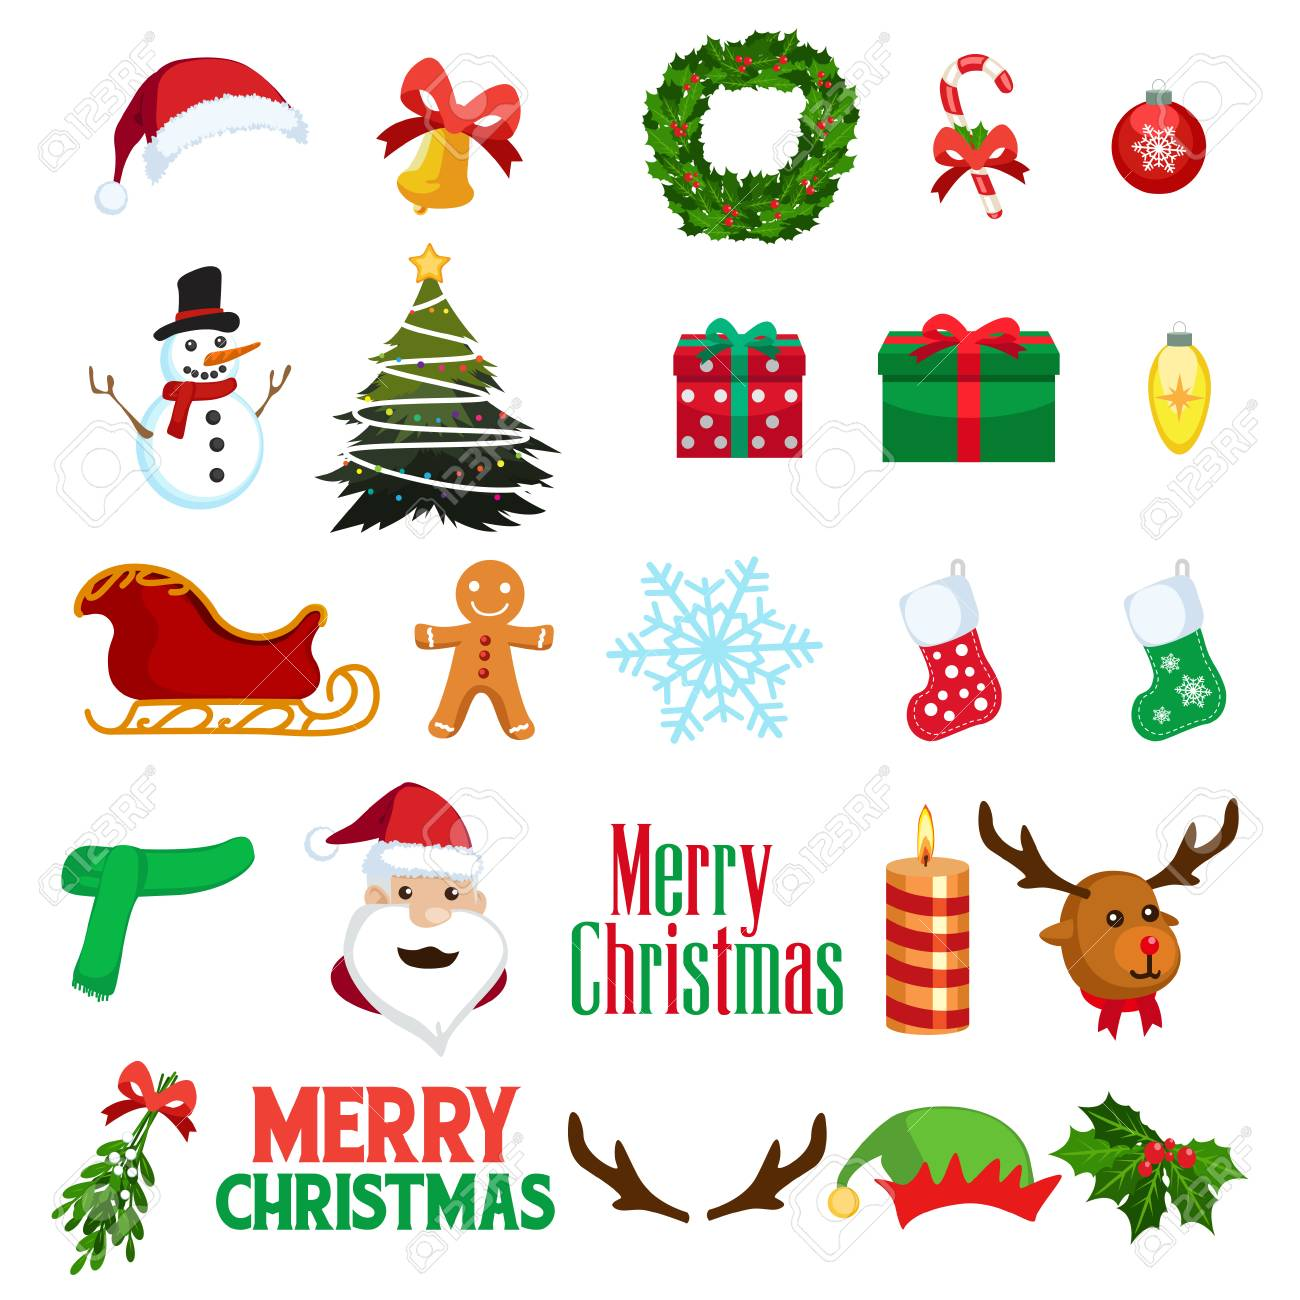 A vector illustration of Christmas Winter Clipart Icons - 78086063